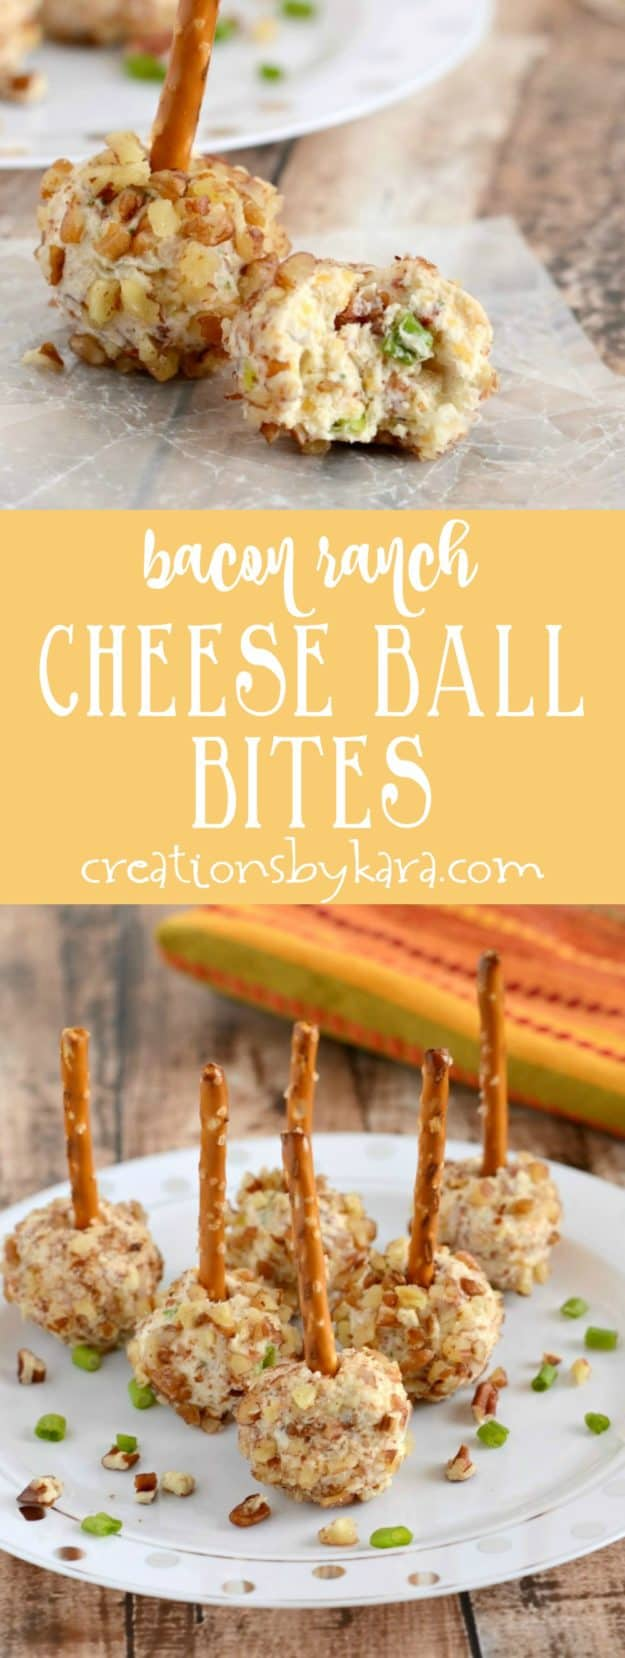 Serve these mini bacon ranch cheese ball bites and get rave reviews. Loaded with bacon and ranch, they are always a crowd pleasing cheese ball recipe. A great game day appetizer.